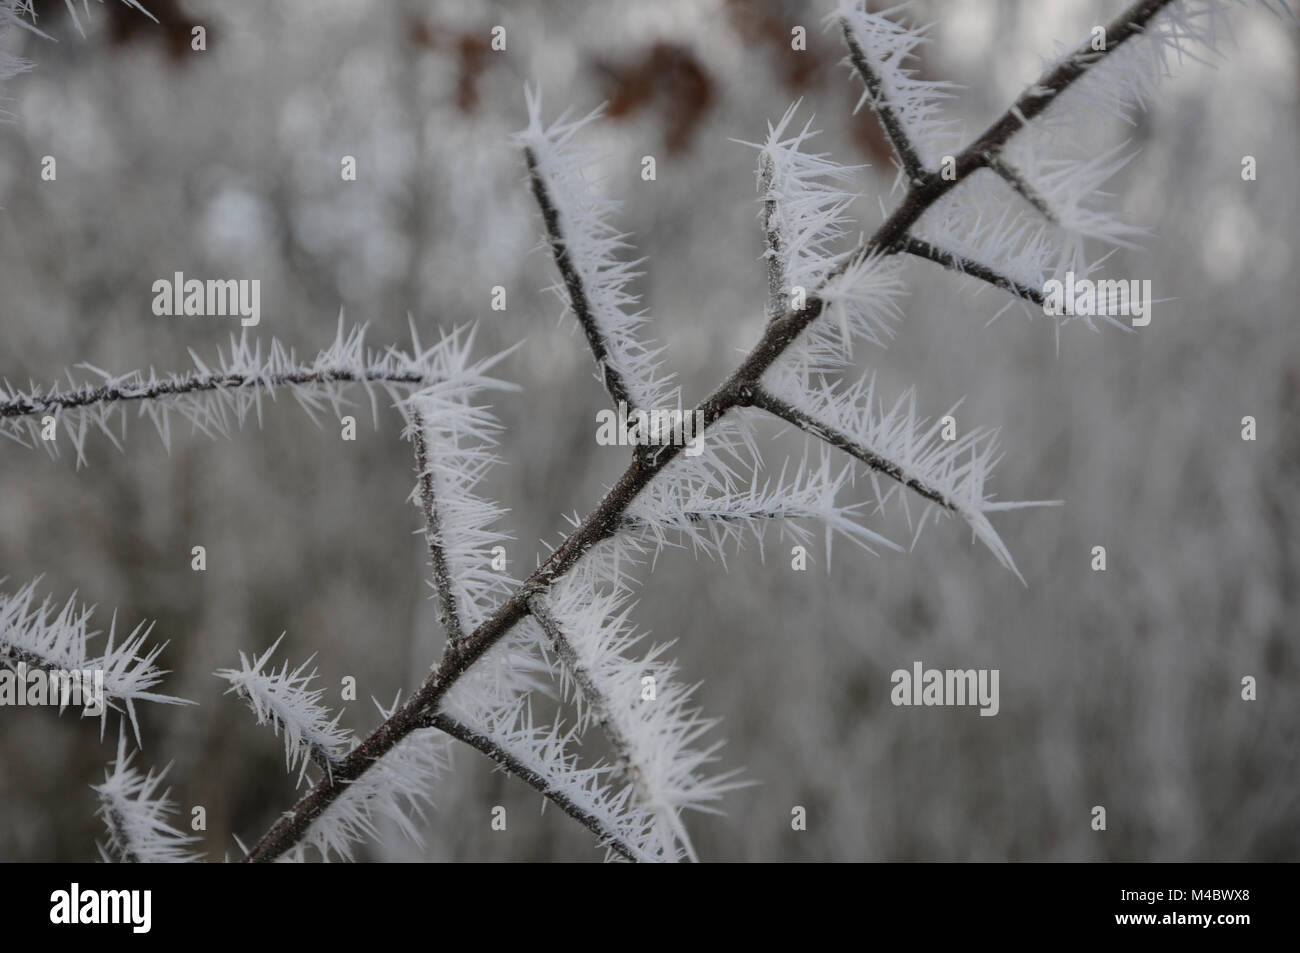 Prunus spinosa, Black Thorn, White Frost, Ice - Stock Image